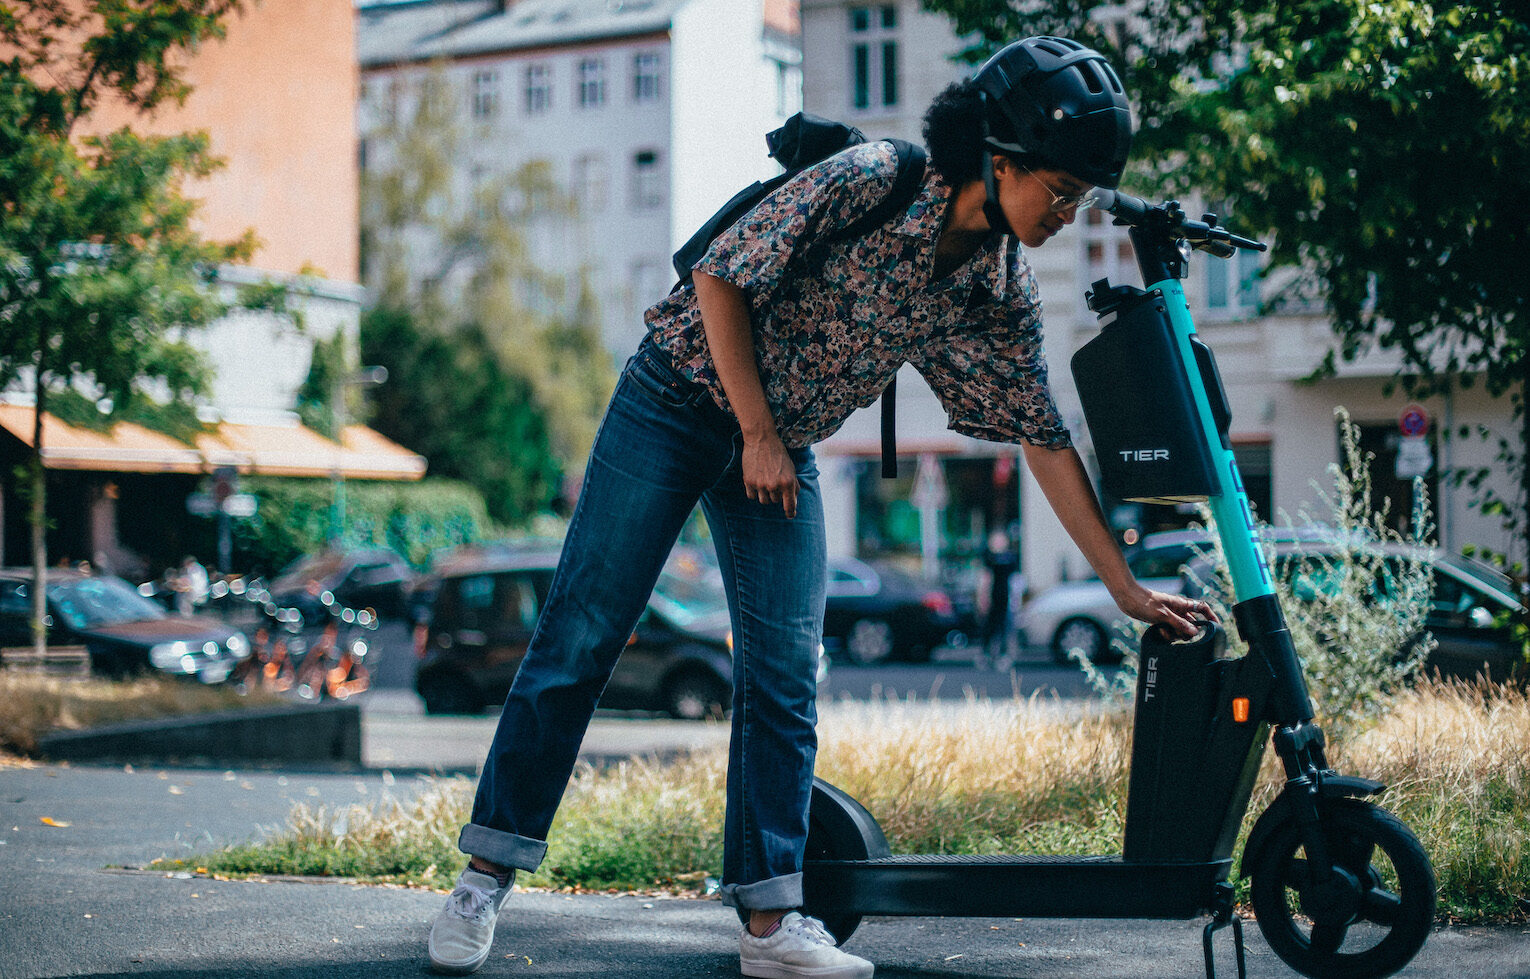 Tier partners with Northvolt to equip e-scooters with greener batteries